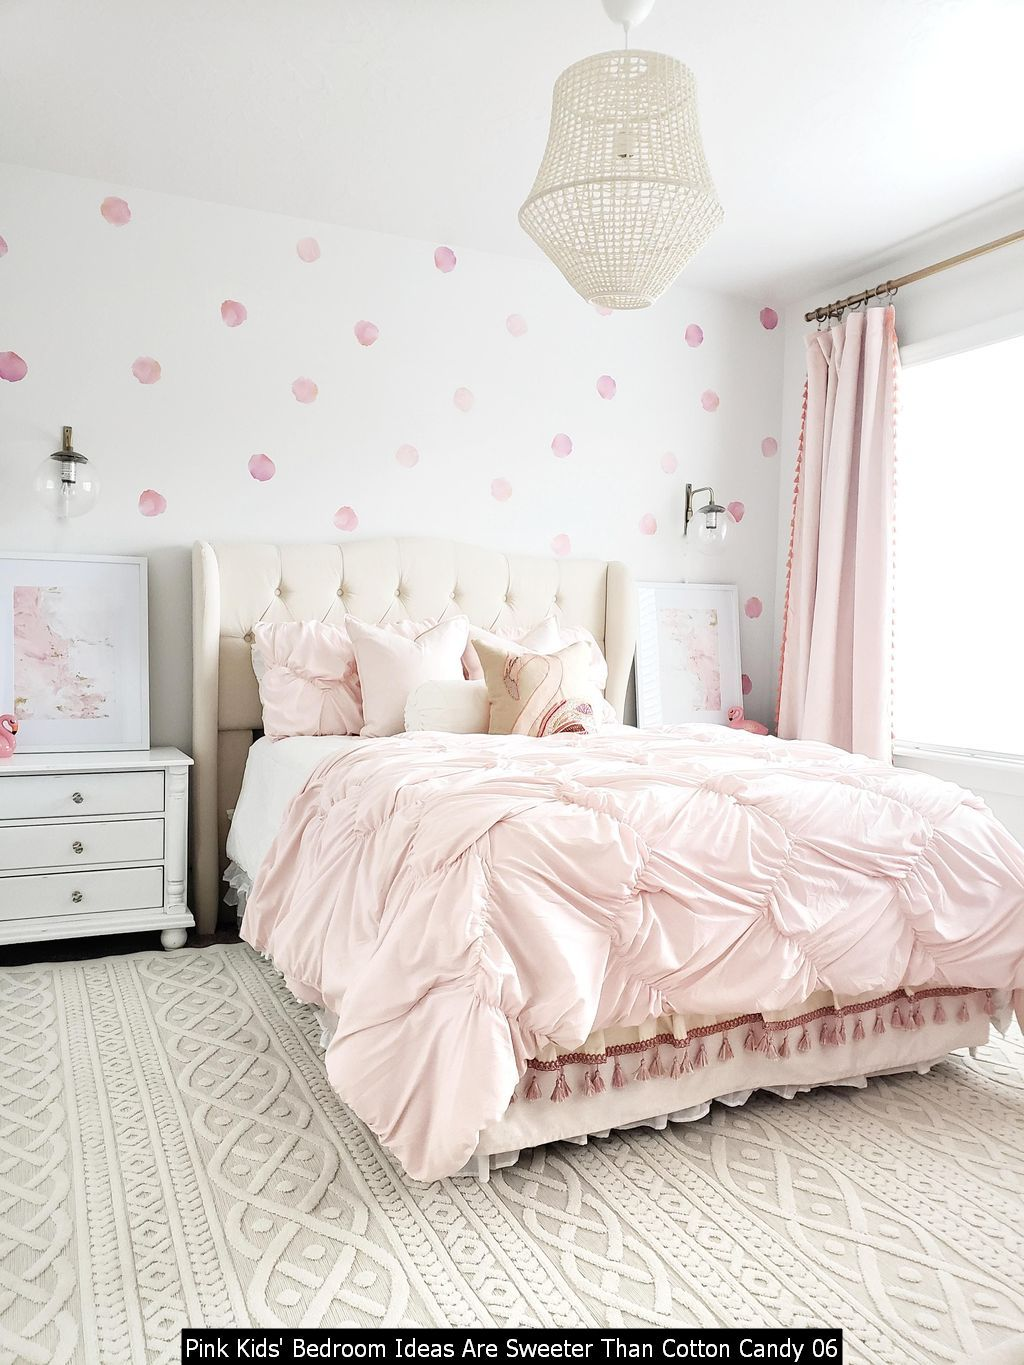 Adorable 27 Pink Kids Bedroom Ideas Are Sweeter Than Cotton Candy Girls Room Design Pink Kids Bedrooms Bedroom Decor